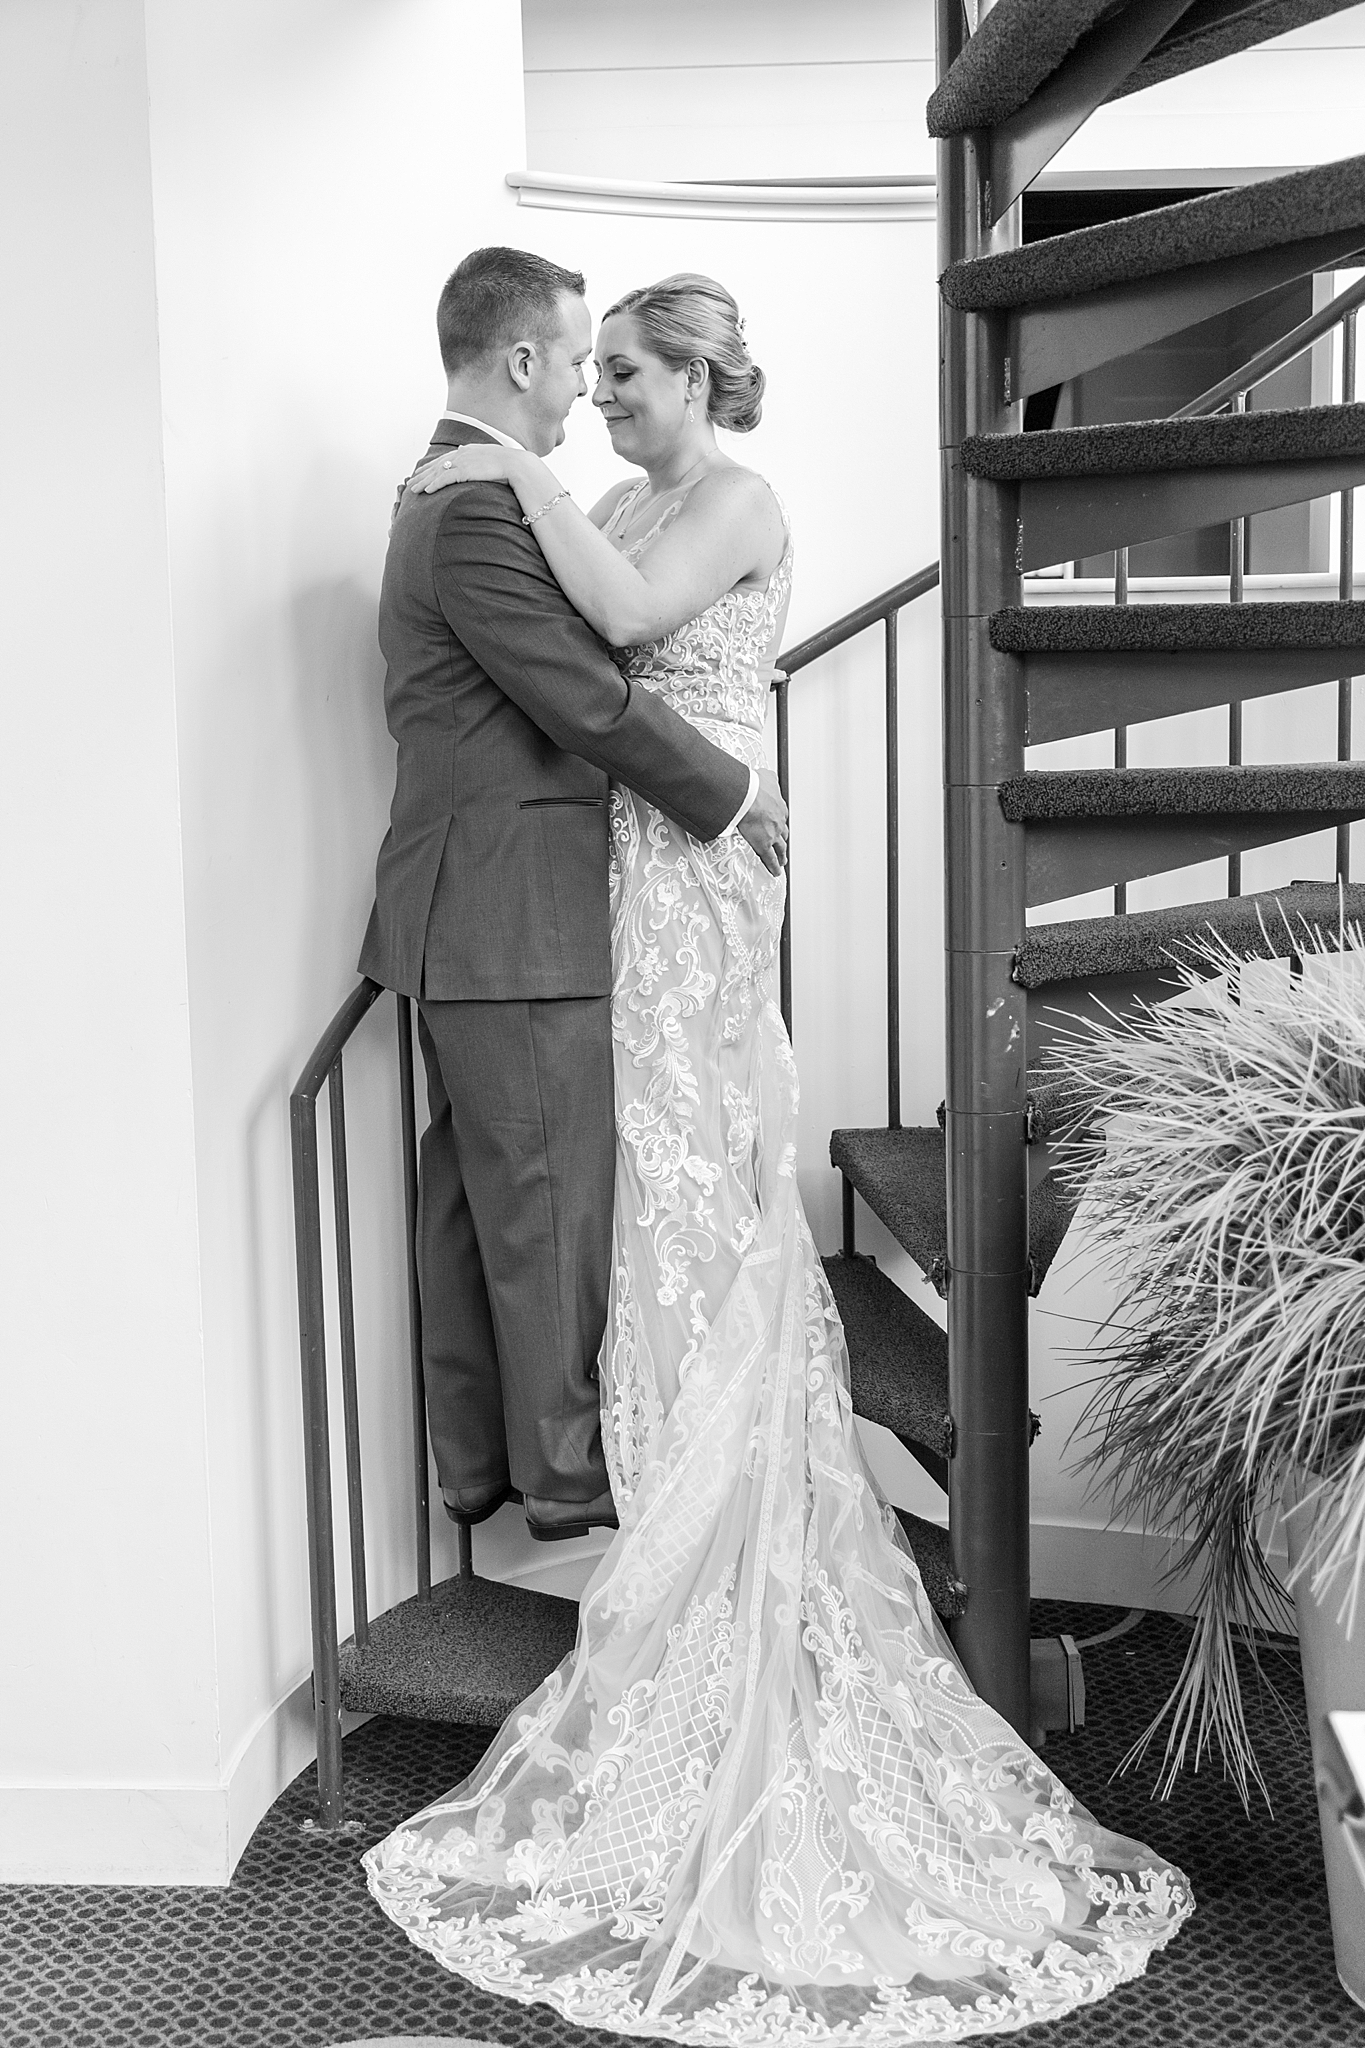 modern-romantic-wedding-photography-at-webers-in-ann-arbor-michigan-by-courtney-carolyn-photography_0033.jpg